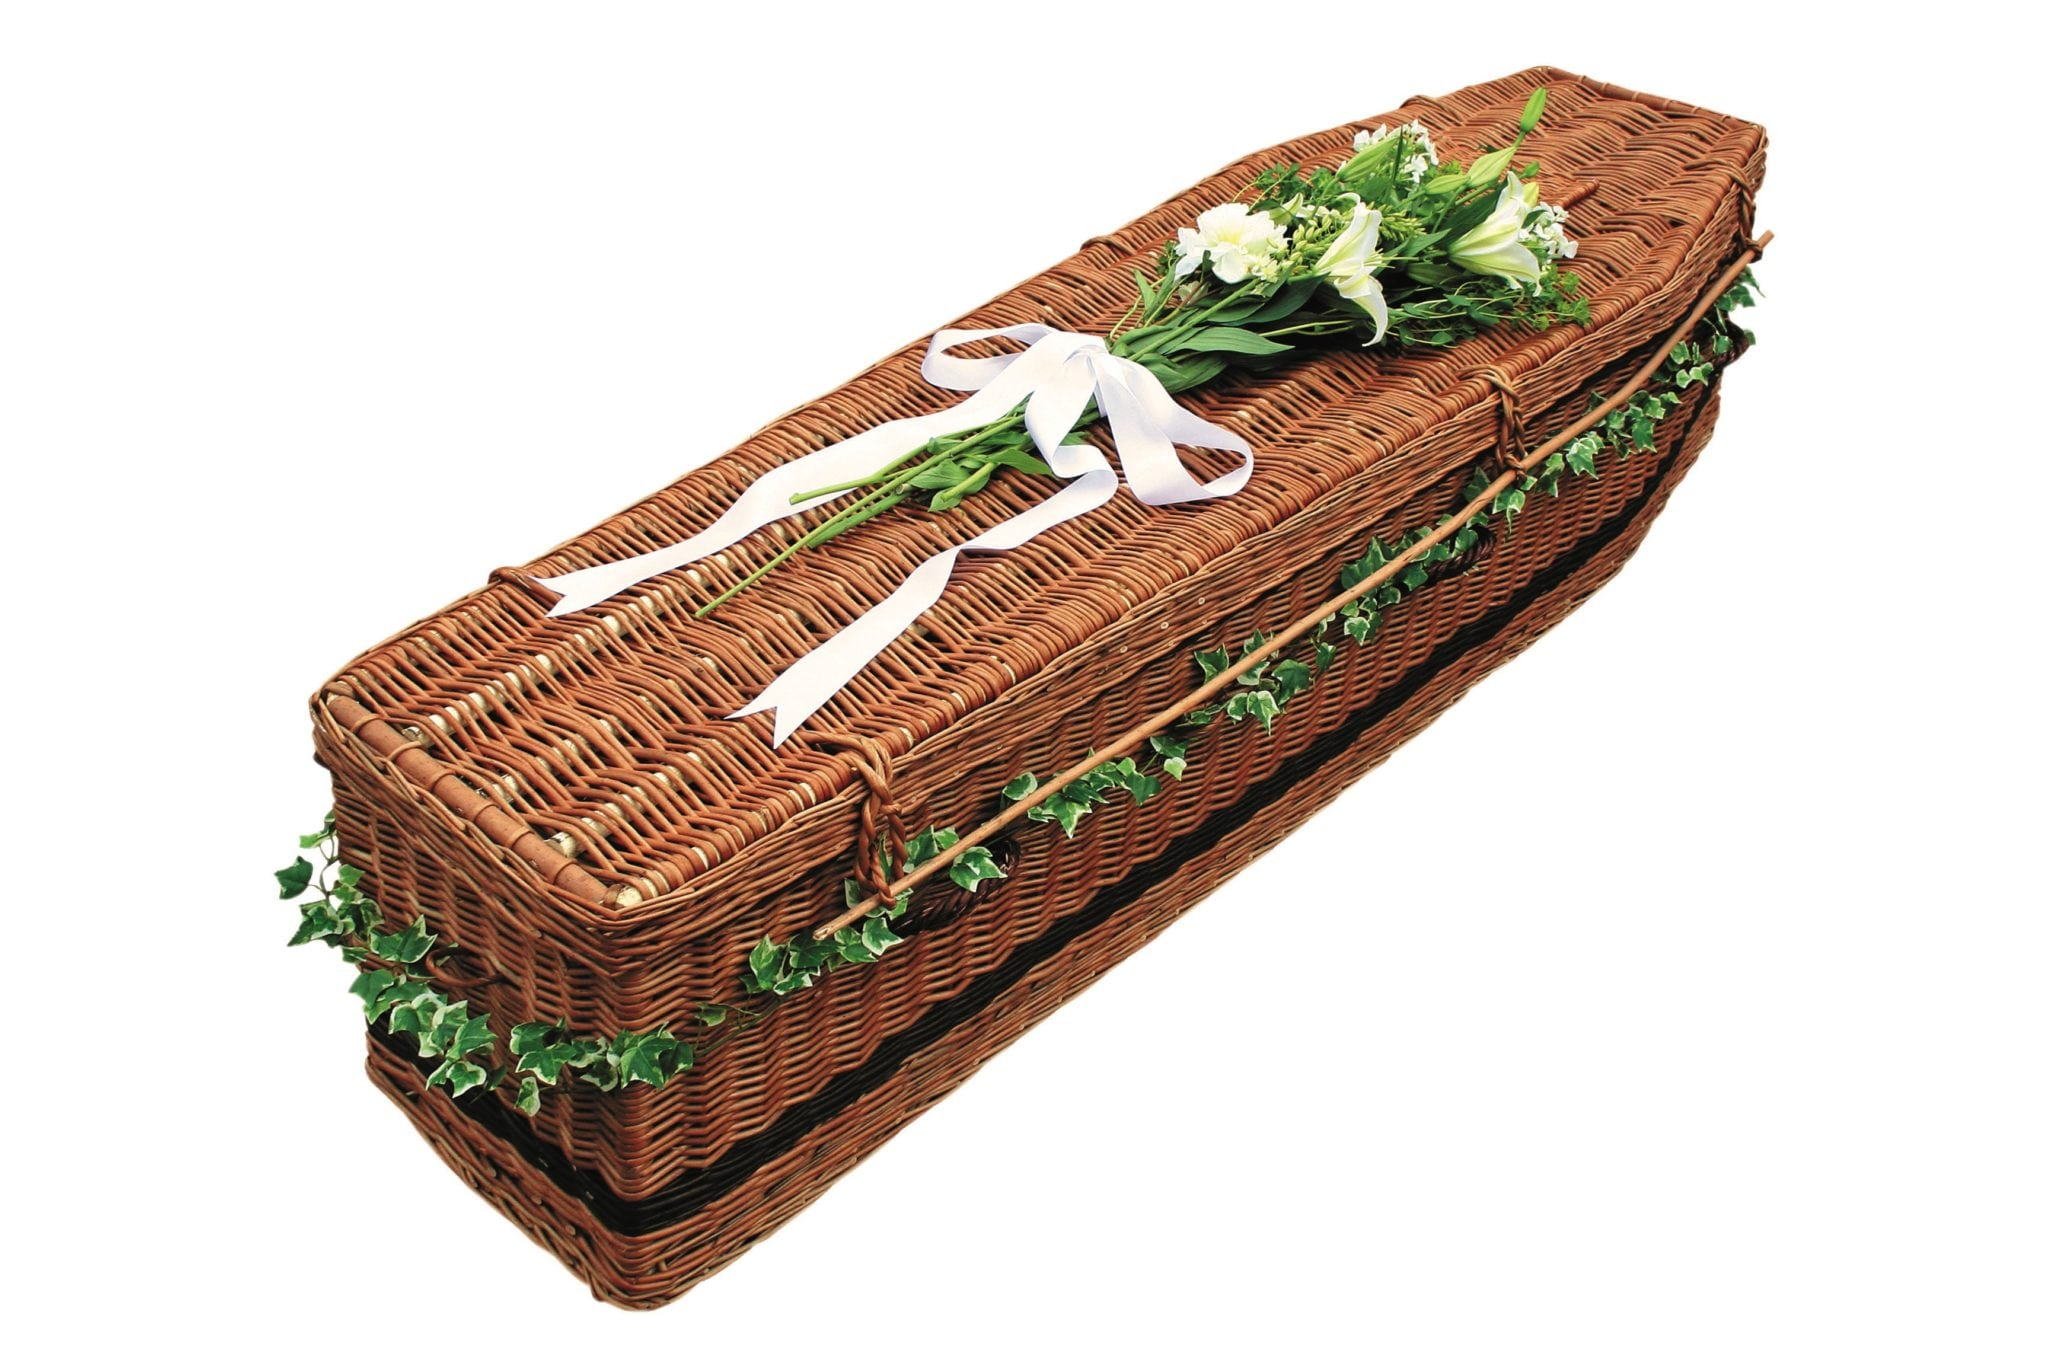 Dark wicker coffin with white flowers & ribbon on top